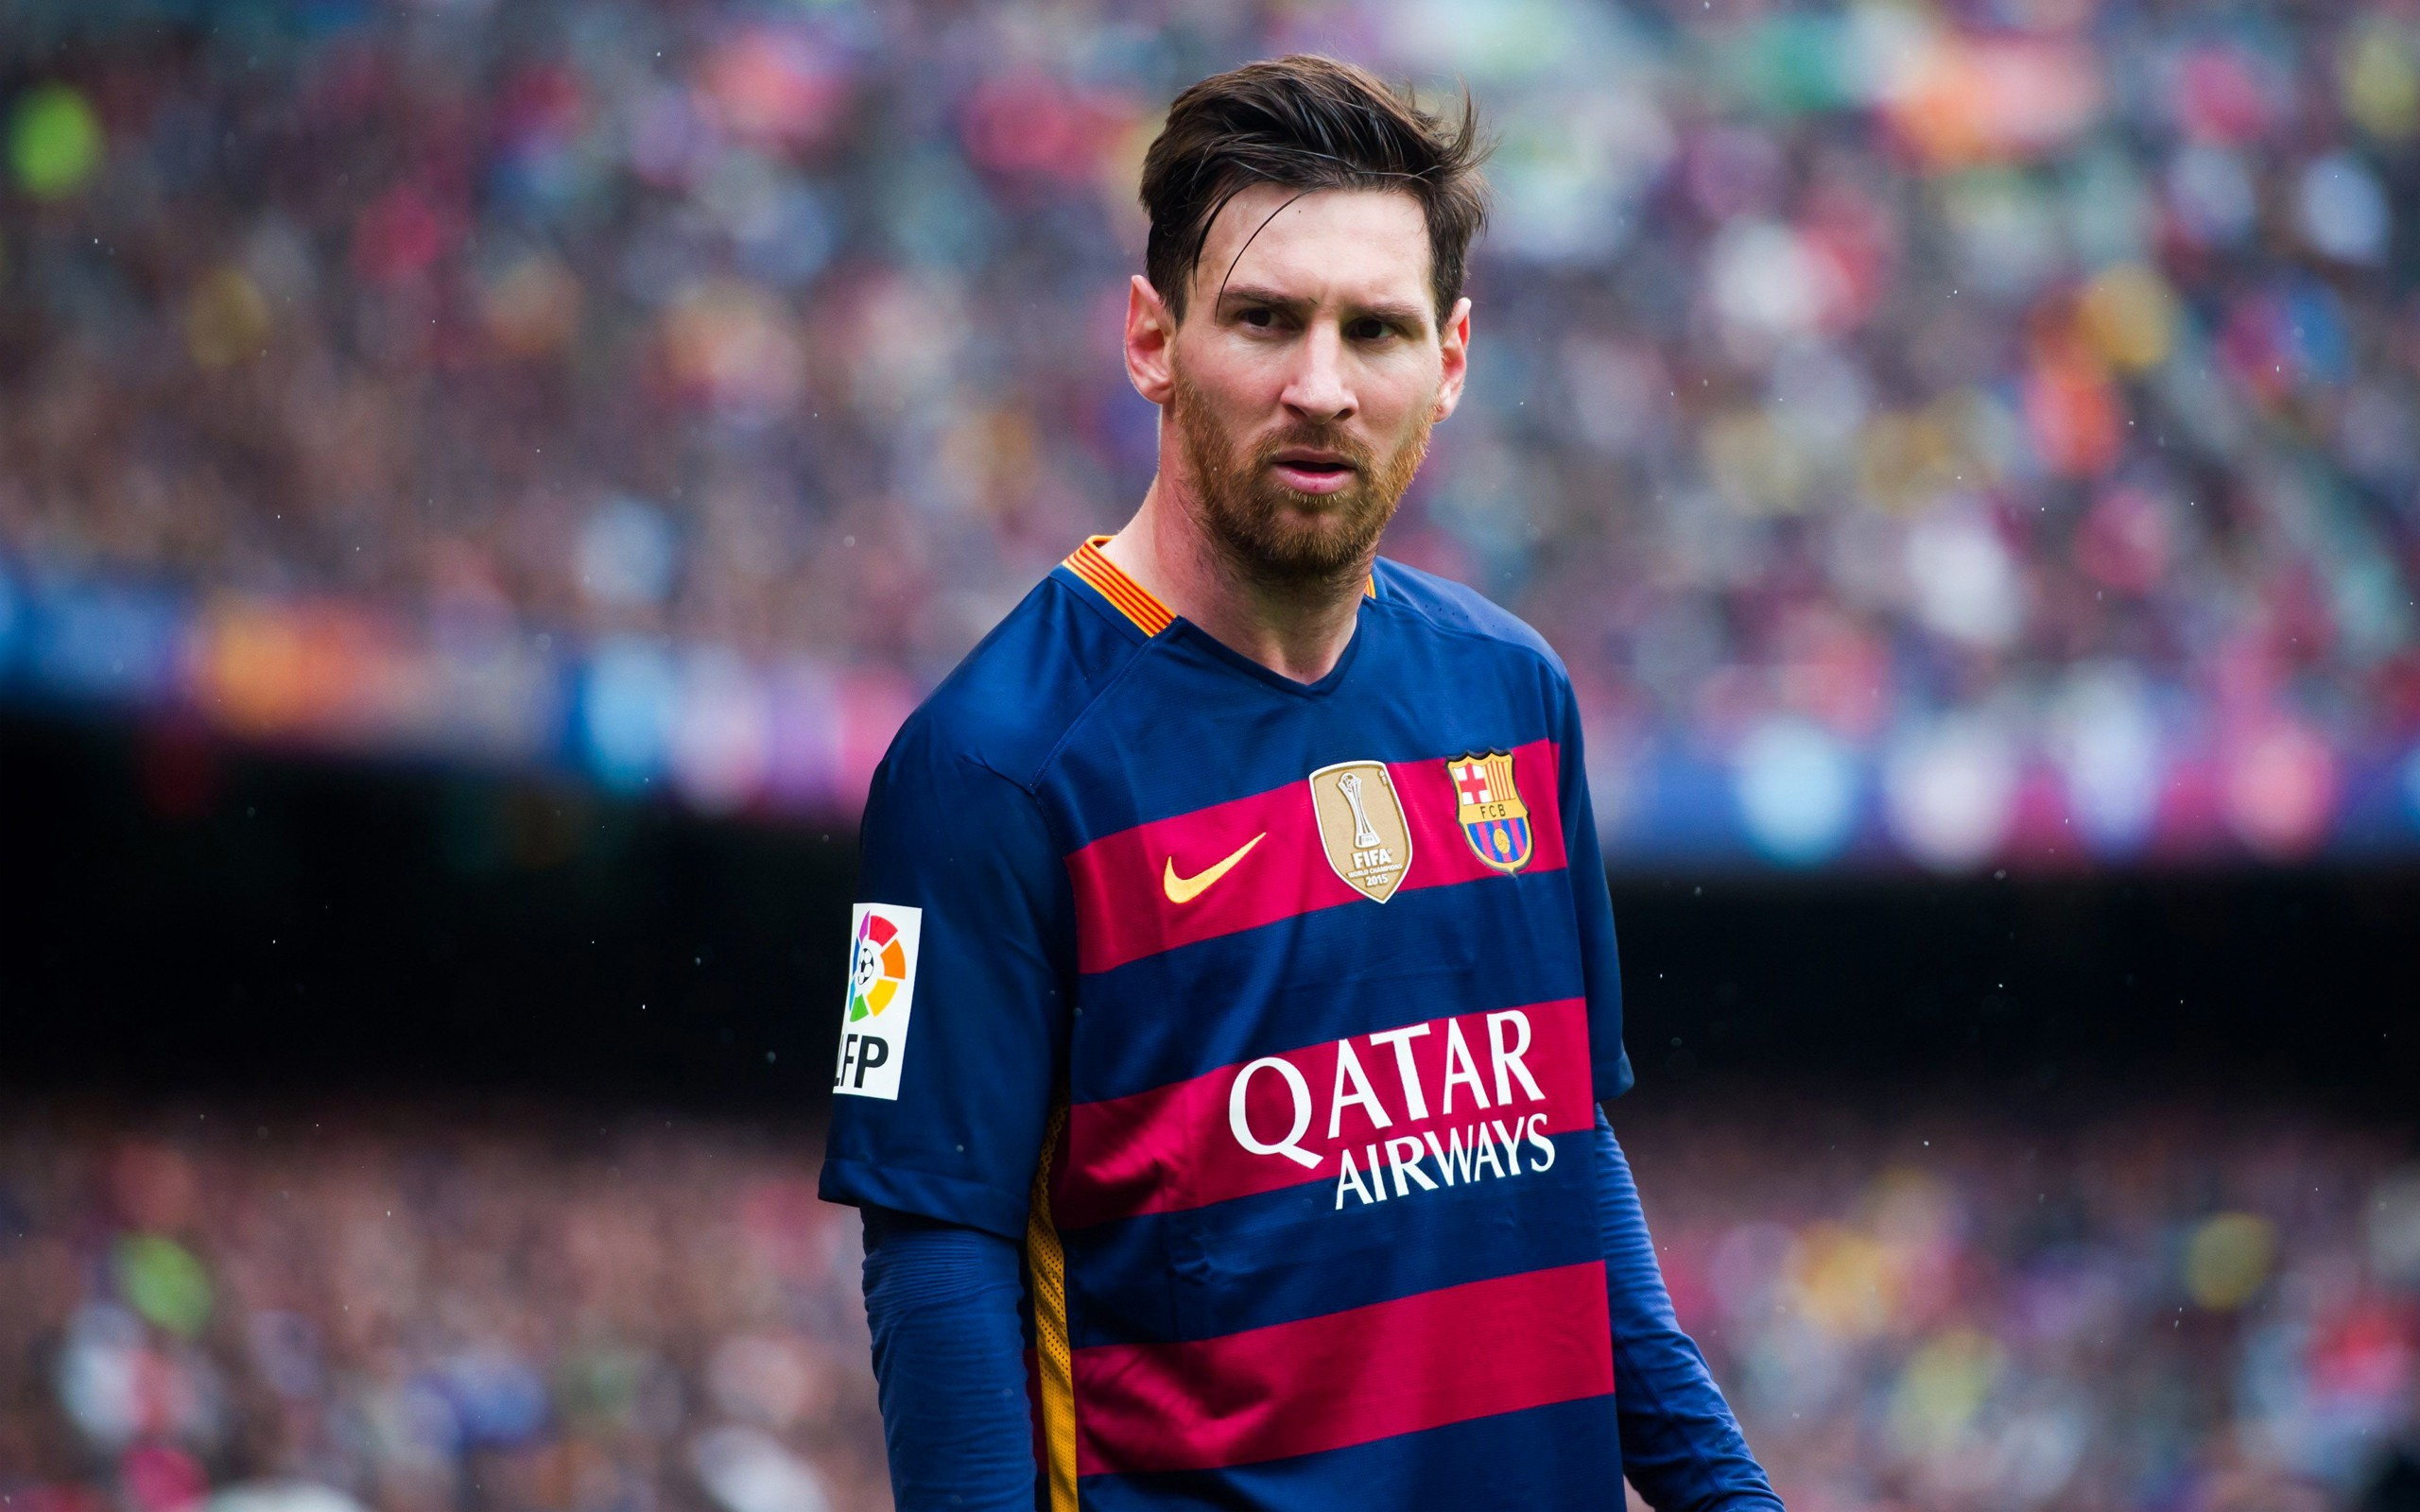 Lionel Messi Wallpapers 2018 81 Images